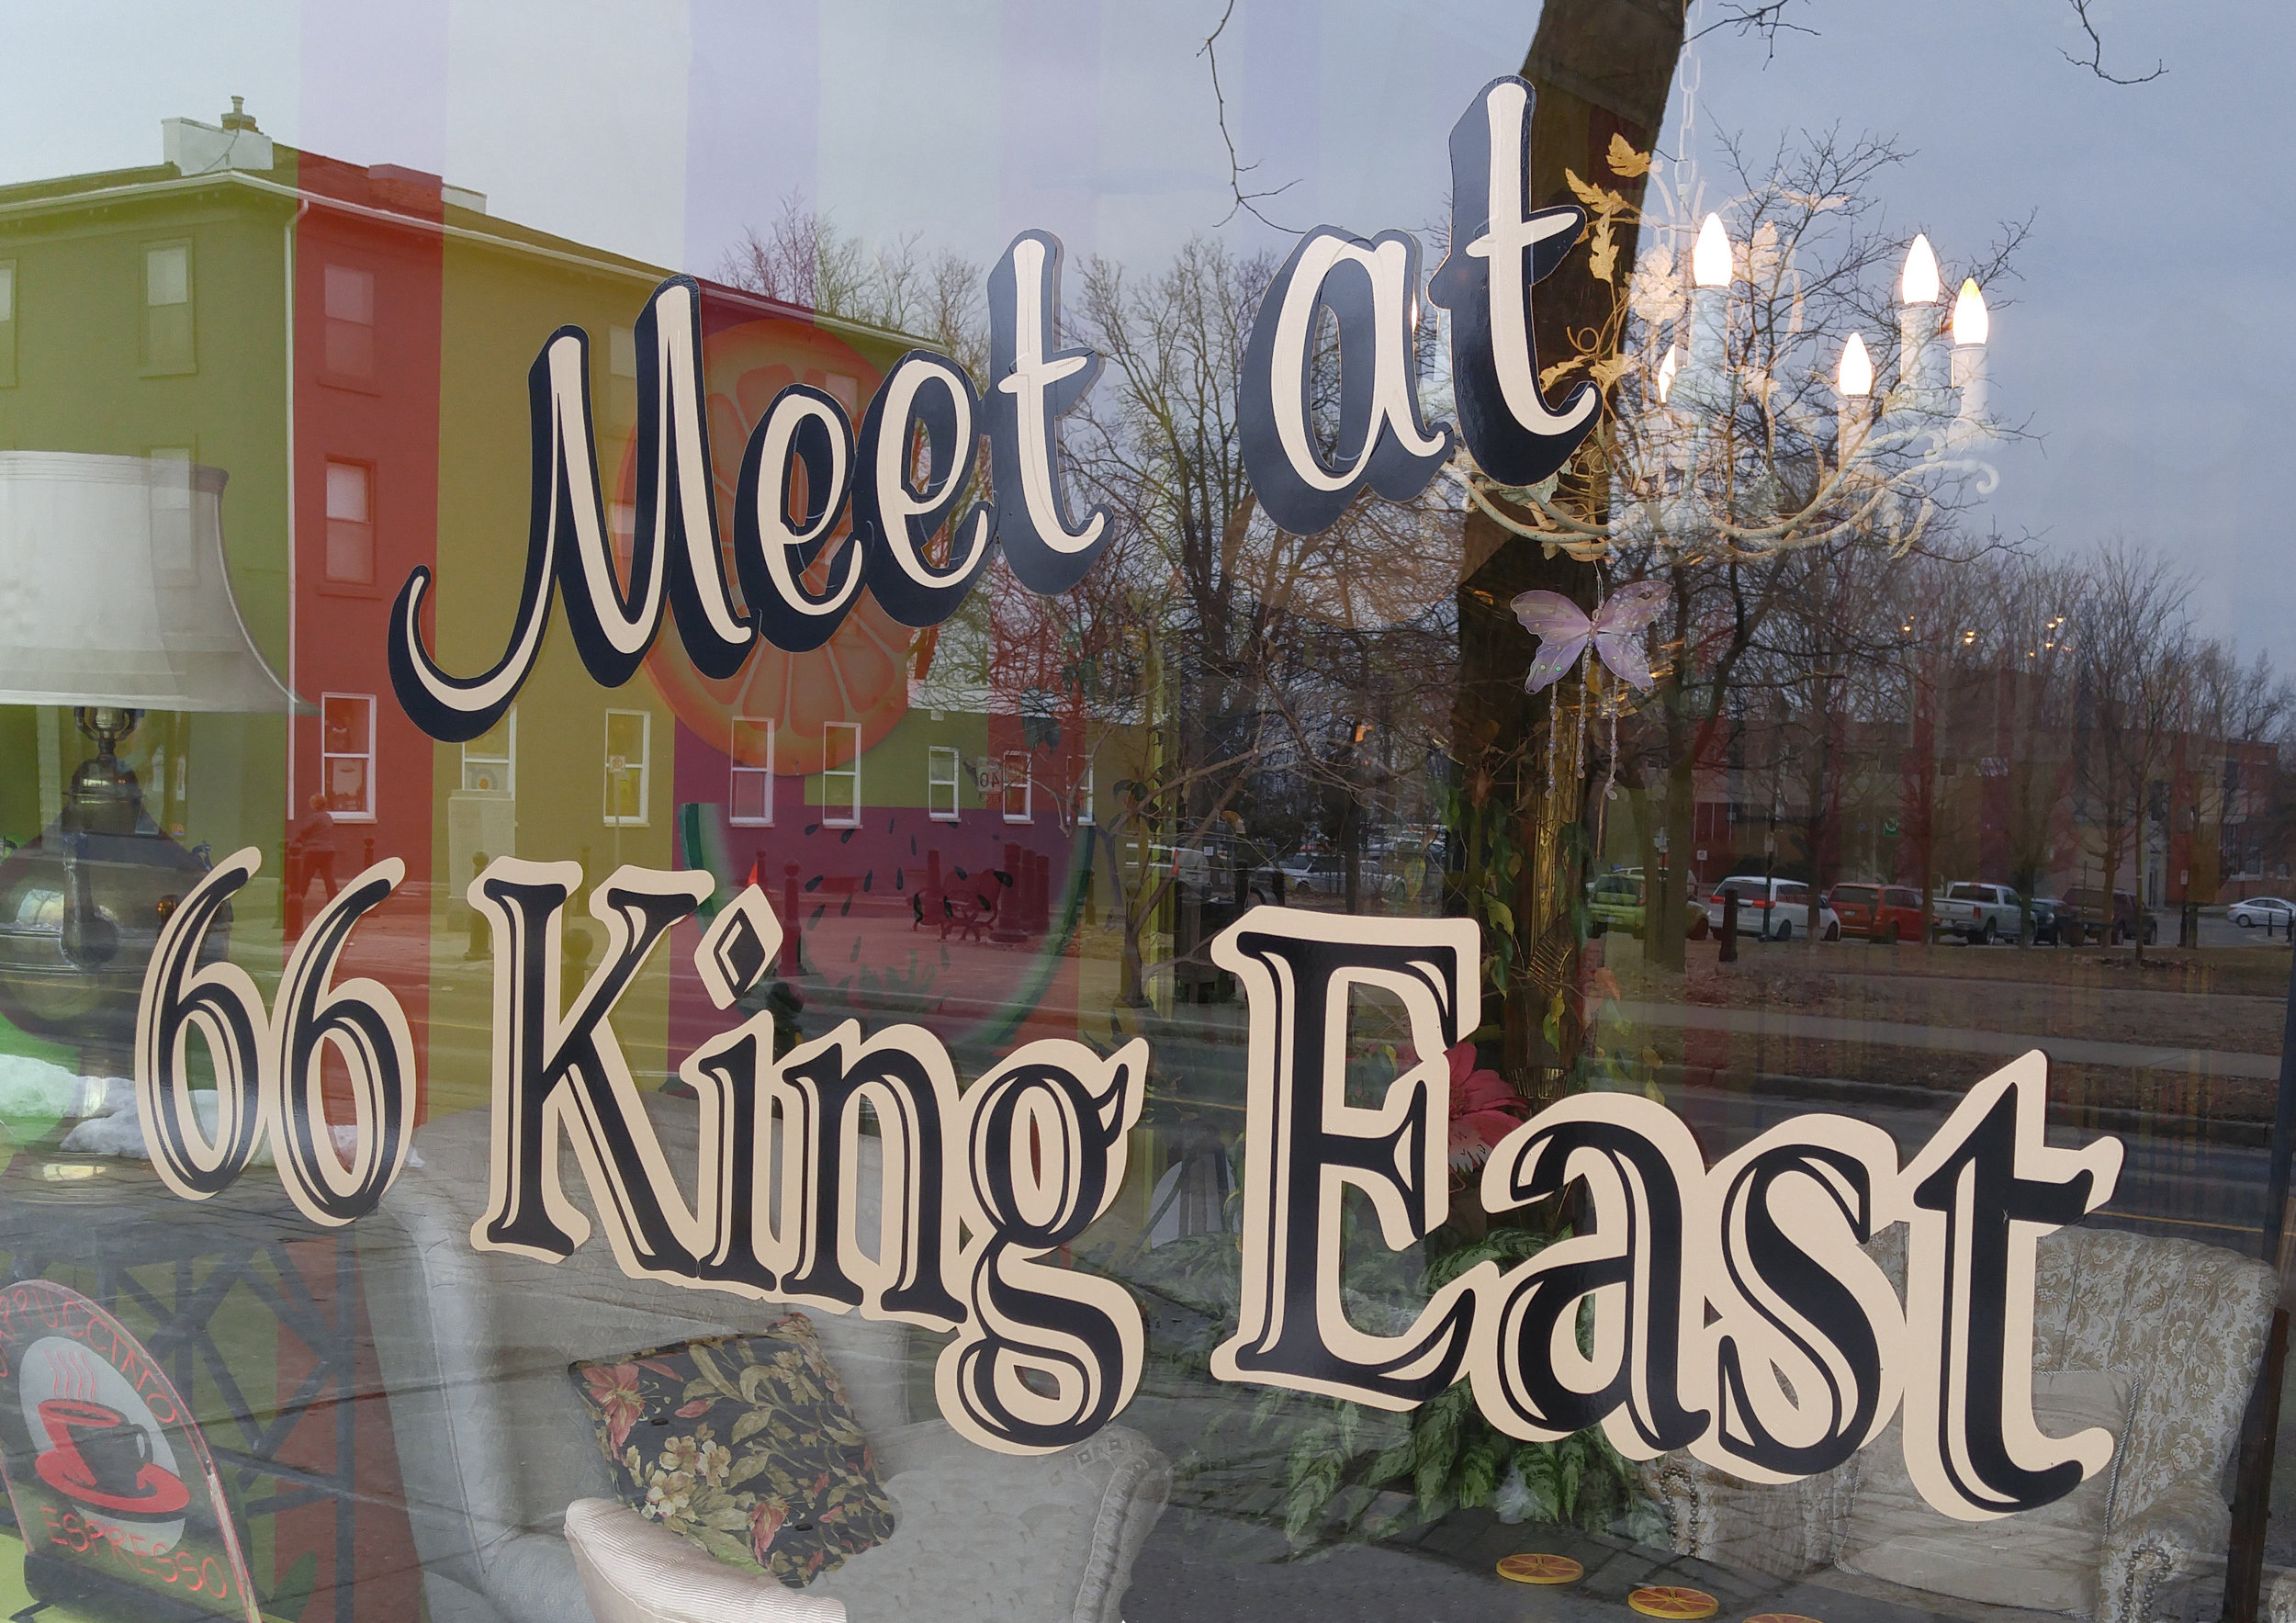 The front window of  Meet at 66 King East  cafe in Cobourg, Ontario.